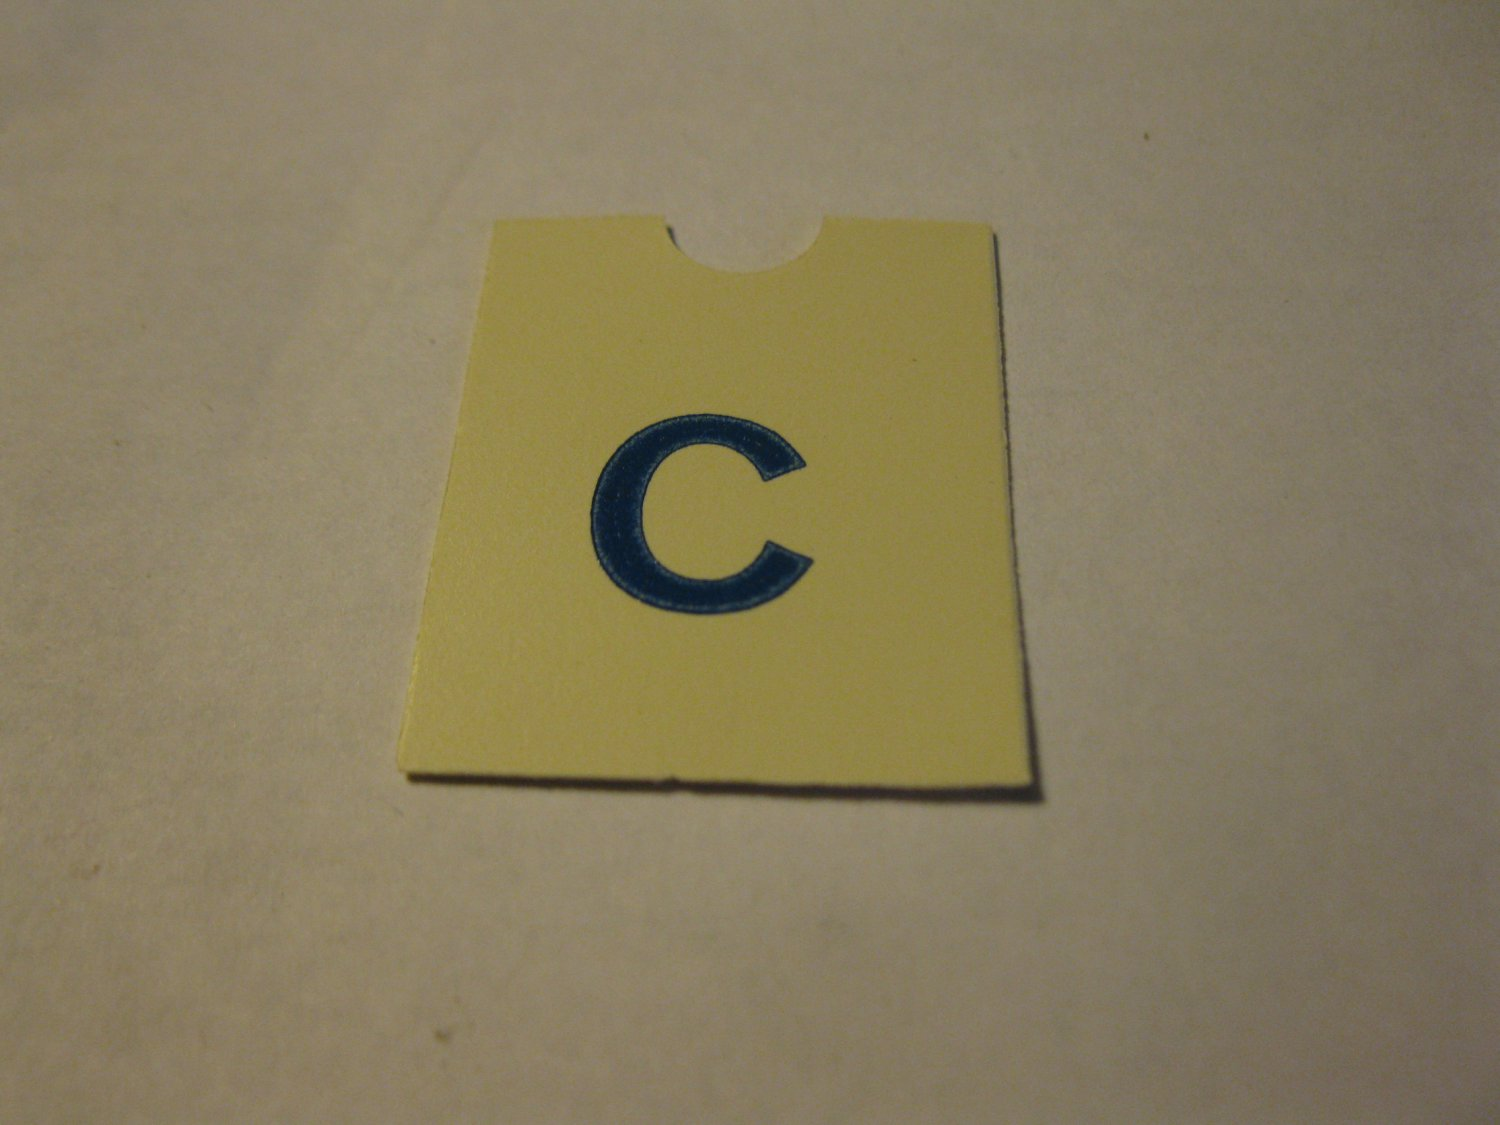 1967 4CYTE Board Game Piece: Blue Letter Tab - C